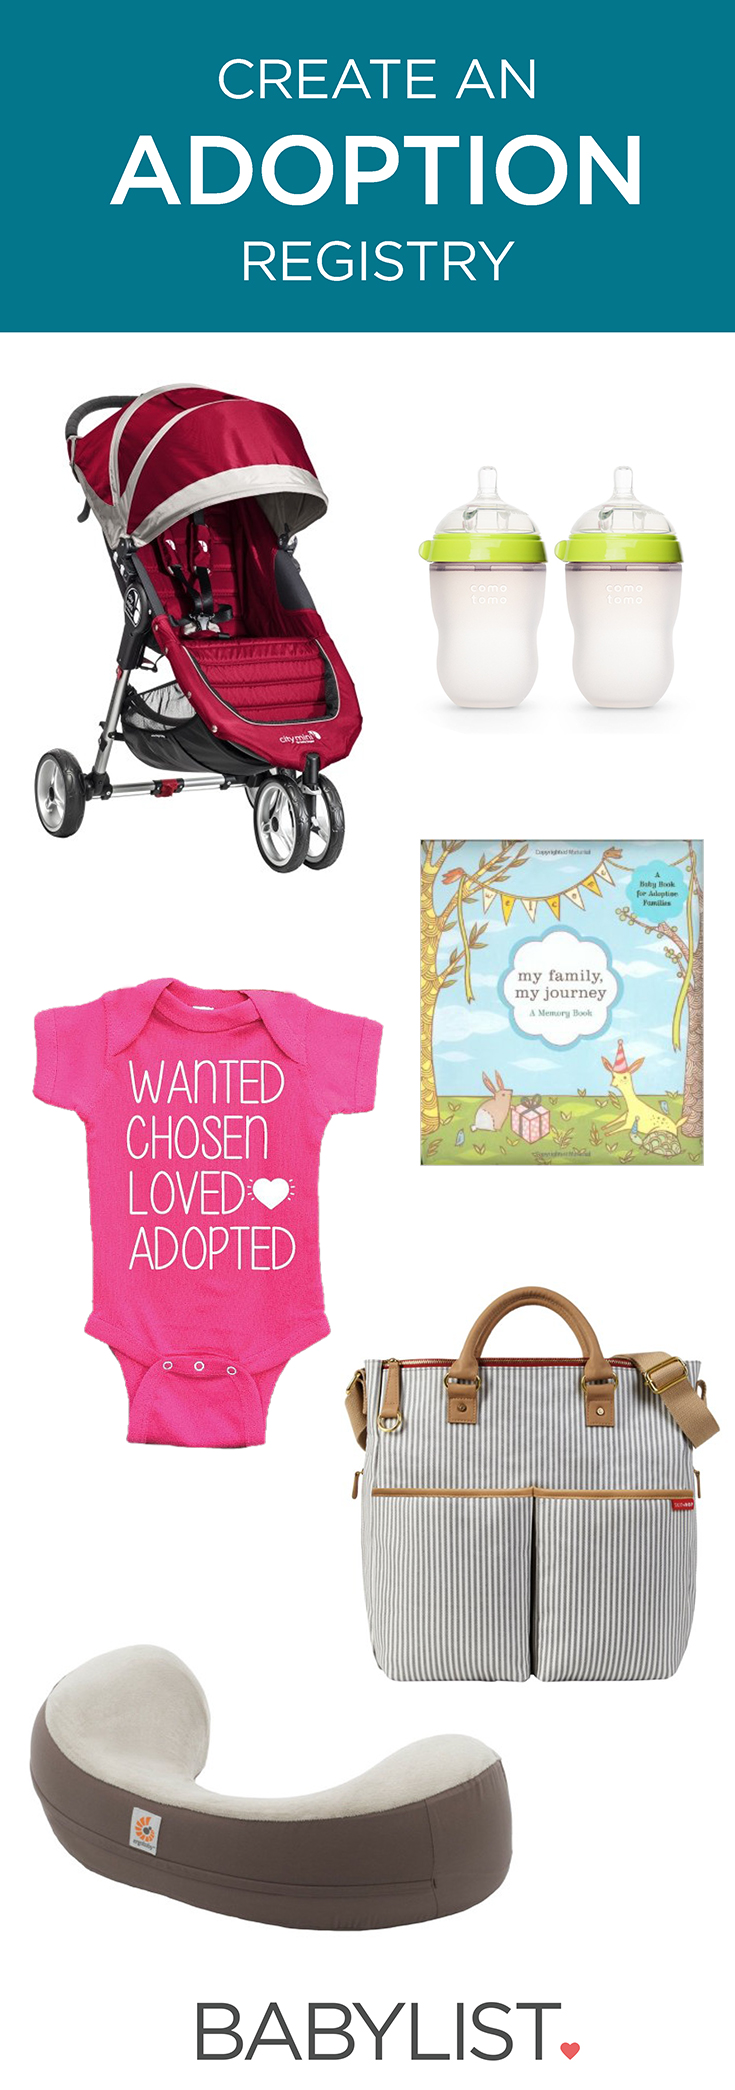 Wondering what gear you'll need and want for your newly adopted baby? Here are some lovingly chosen suggestions!